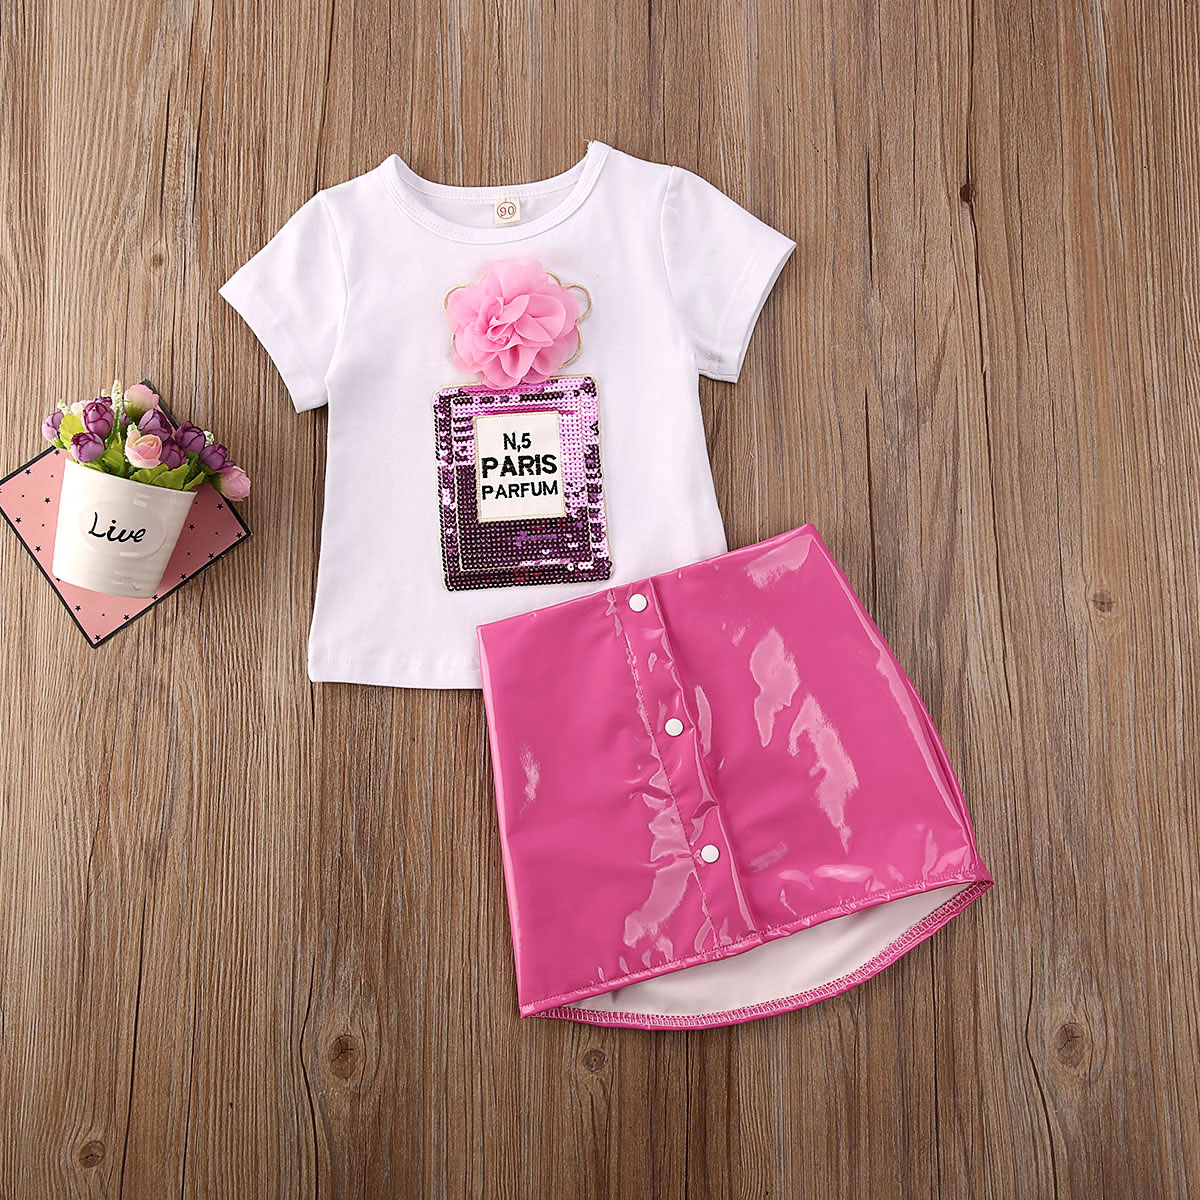 Pudcoco Newest Fashion Toddler Baby Girl Clothes Sequin 3D Flower Print T-Shirt Tops Leather Mini Skirt 2Pcs Outfits Clothes